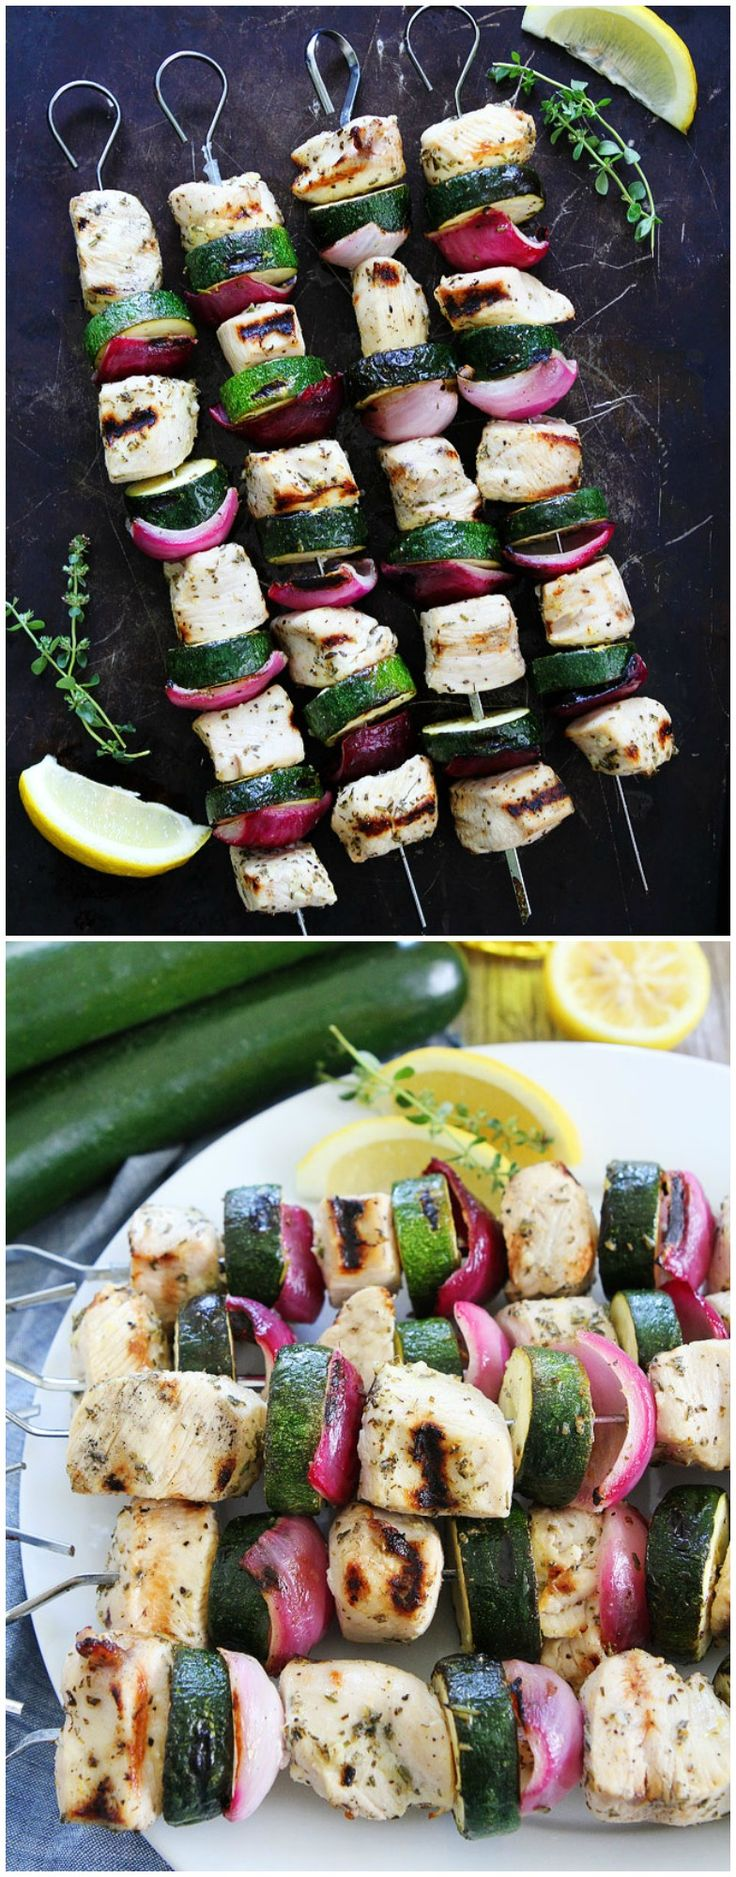 Grilled Chicken And Zucchini Kebabs Kebab Recipesgrilling